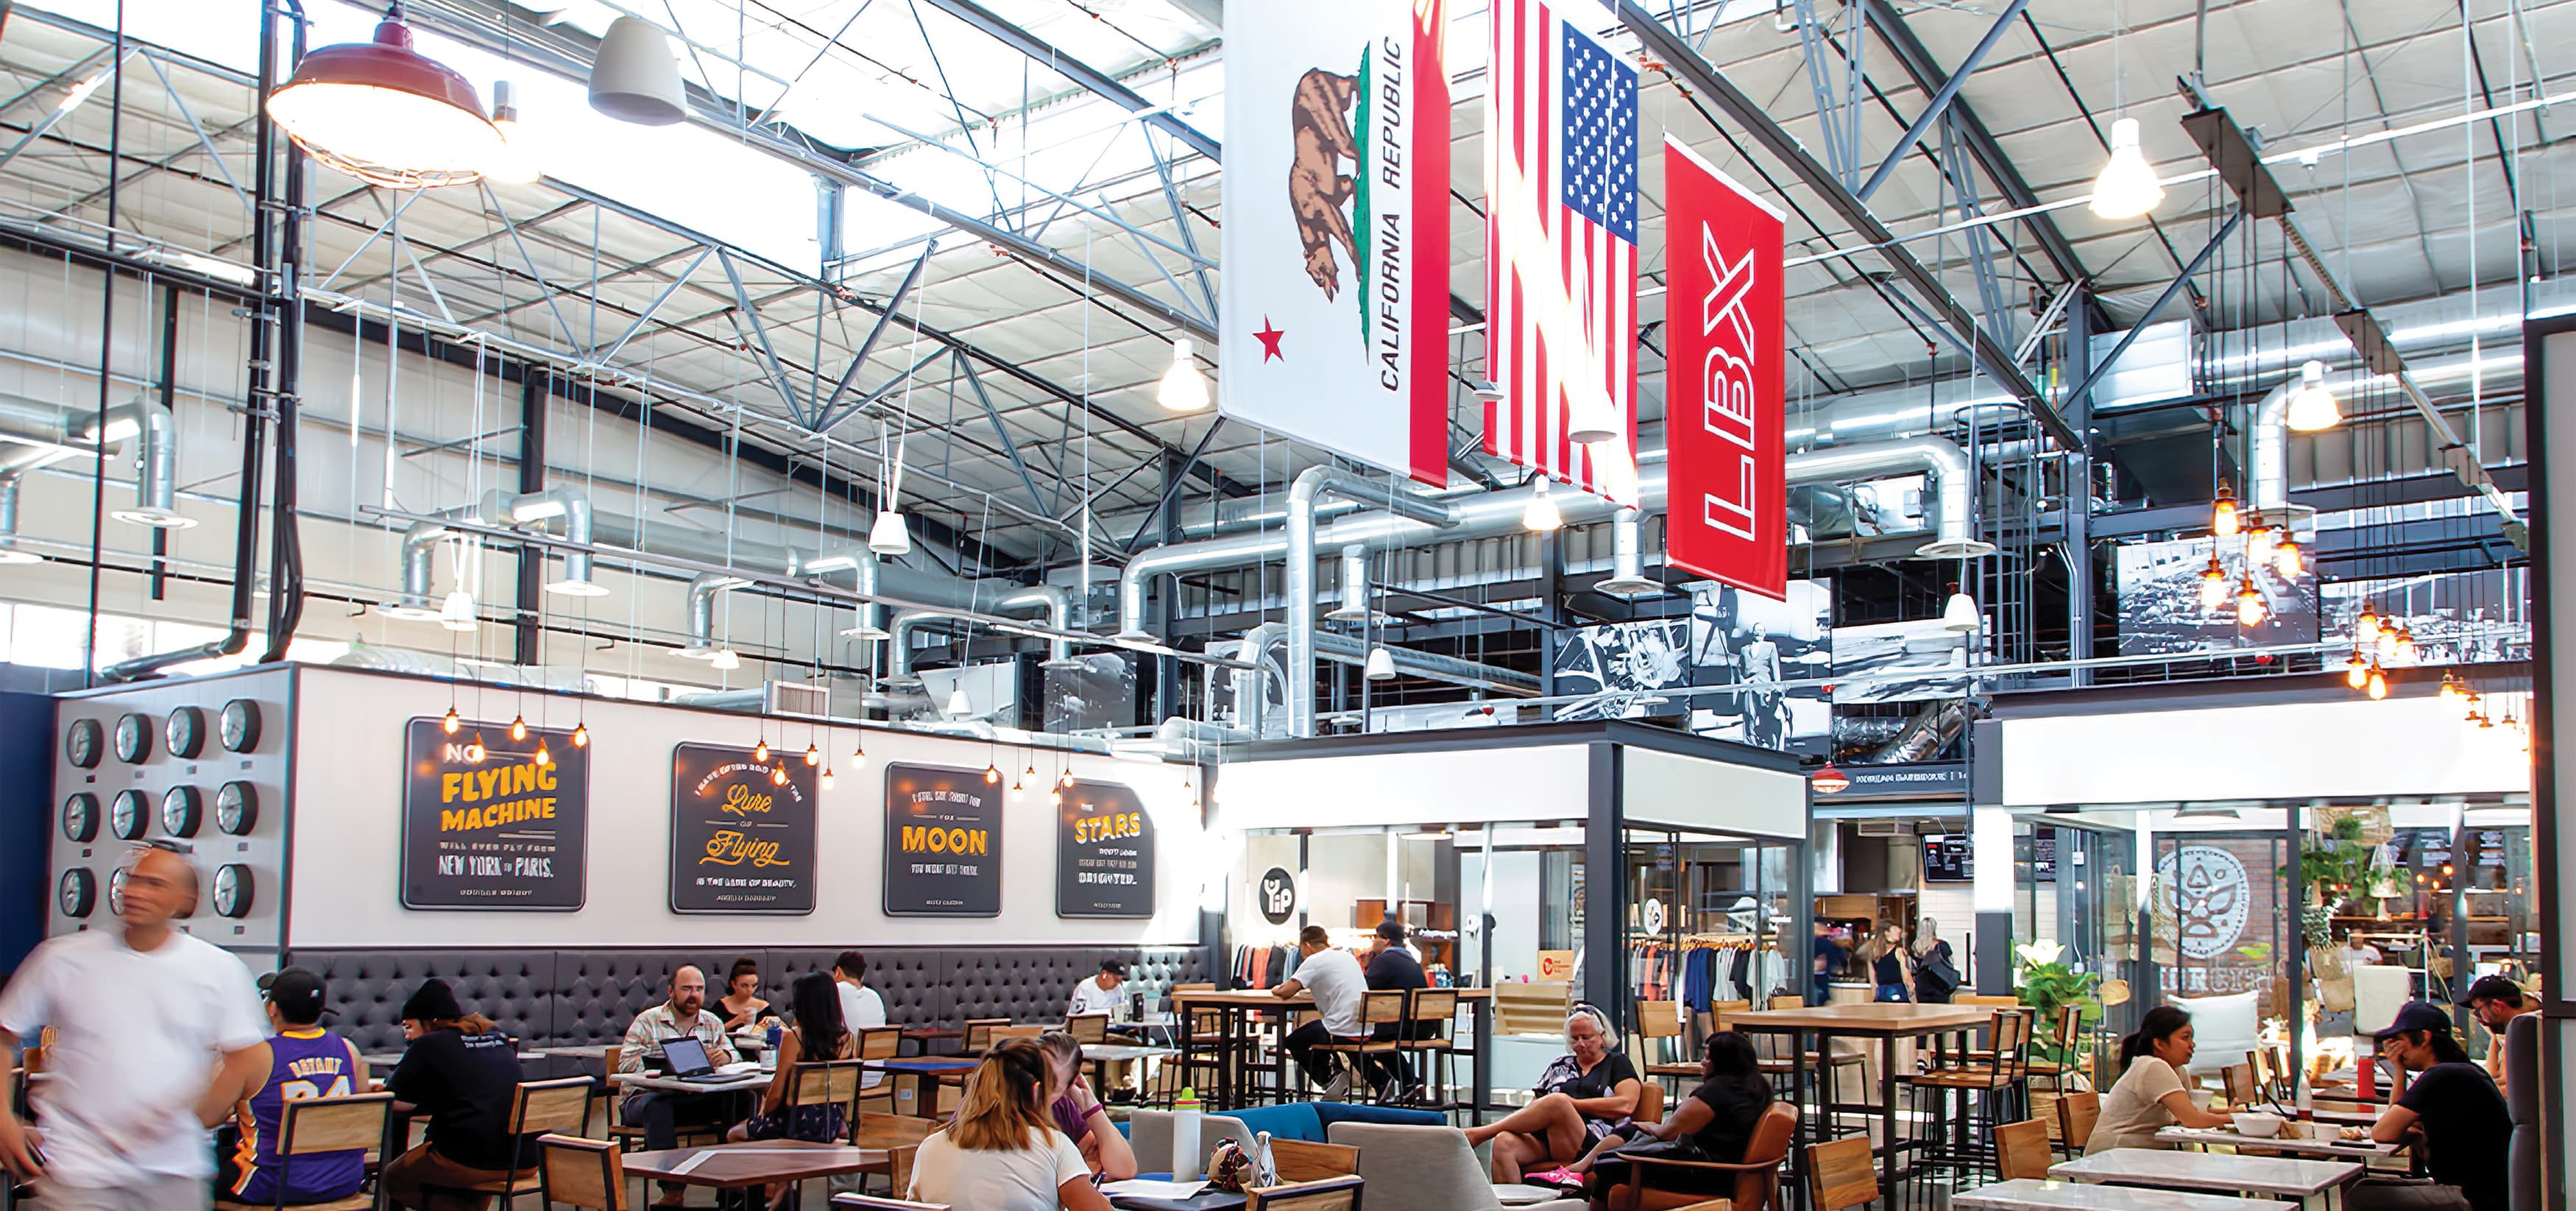 The Hangar, a food hall dining complex at Long Beach Exchange. Environmental Graphic Design.